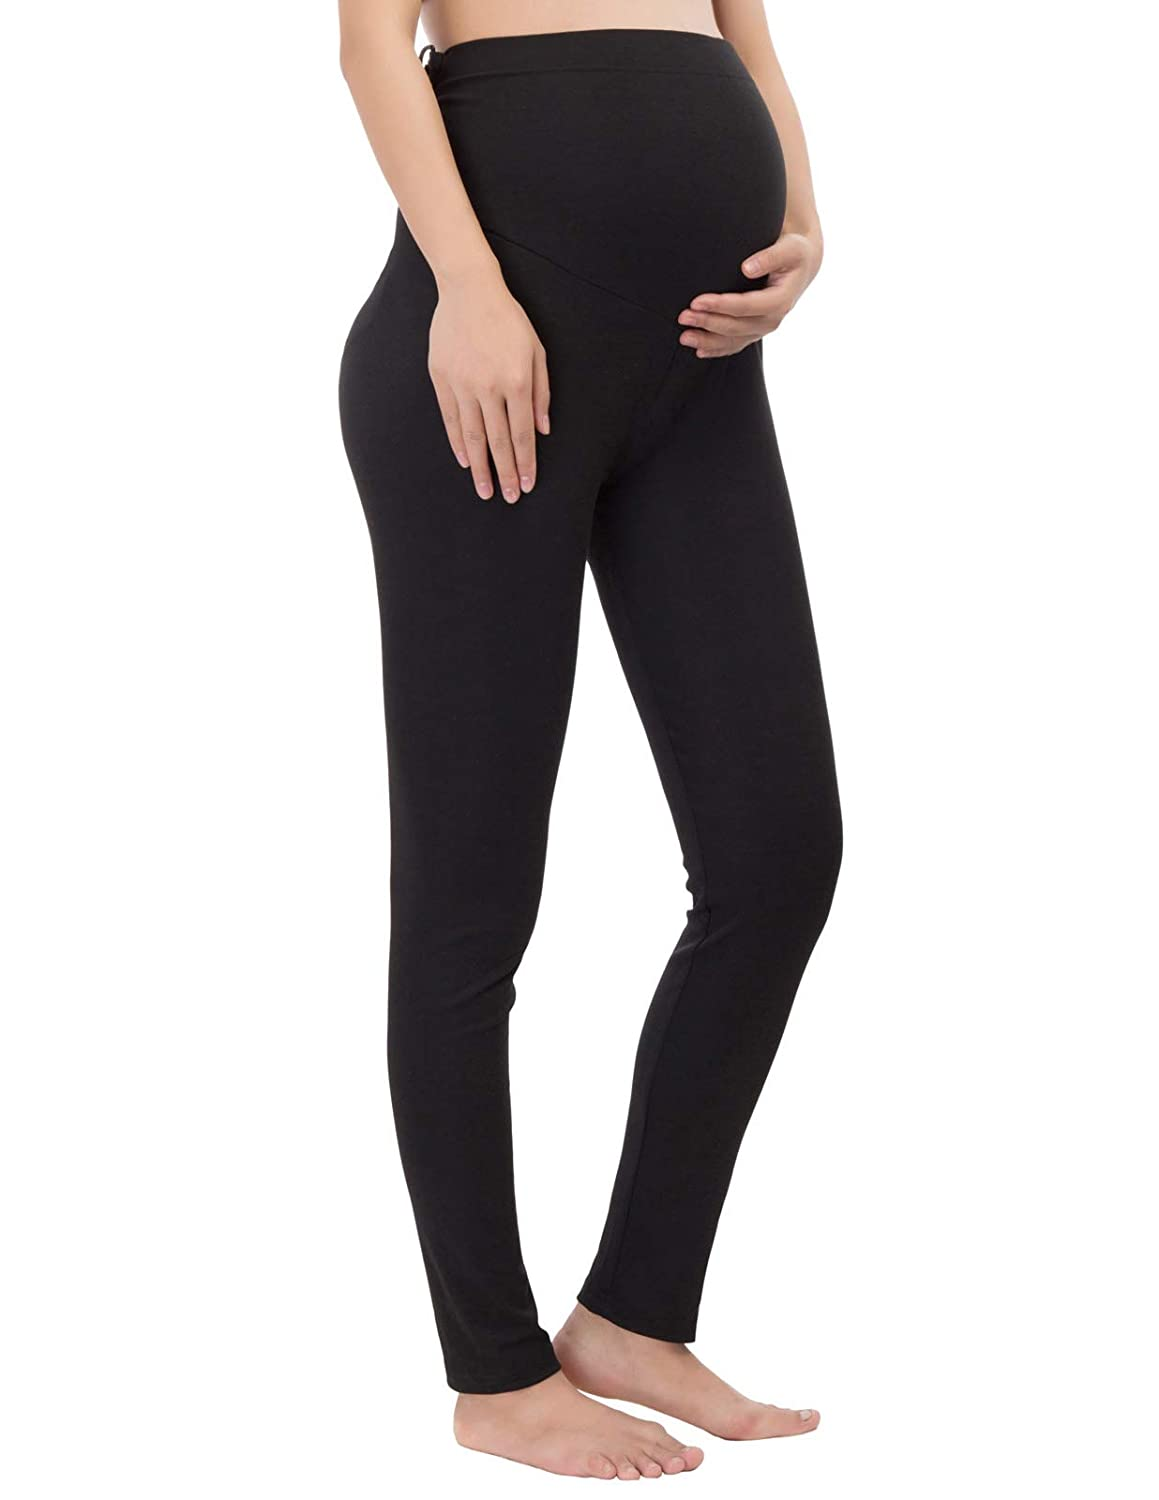 f62cf22a25b5e Pregnant Women Maternity Stretchy Tights Over-The-Belly Leggings Pants at  Amazon Women's Clothing store: